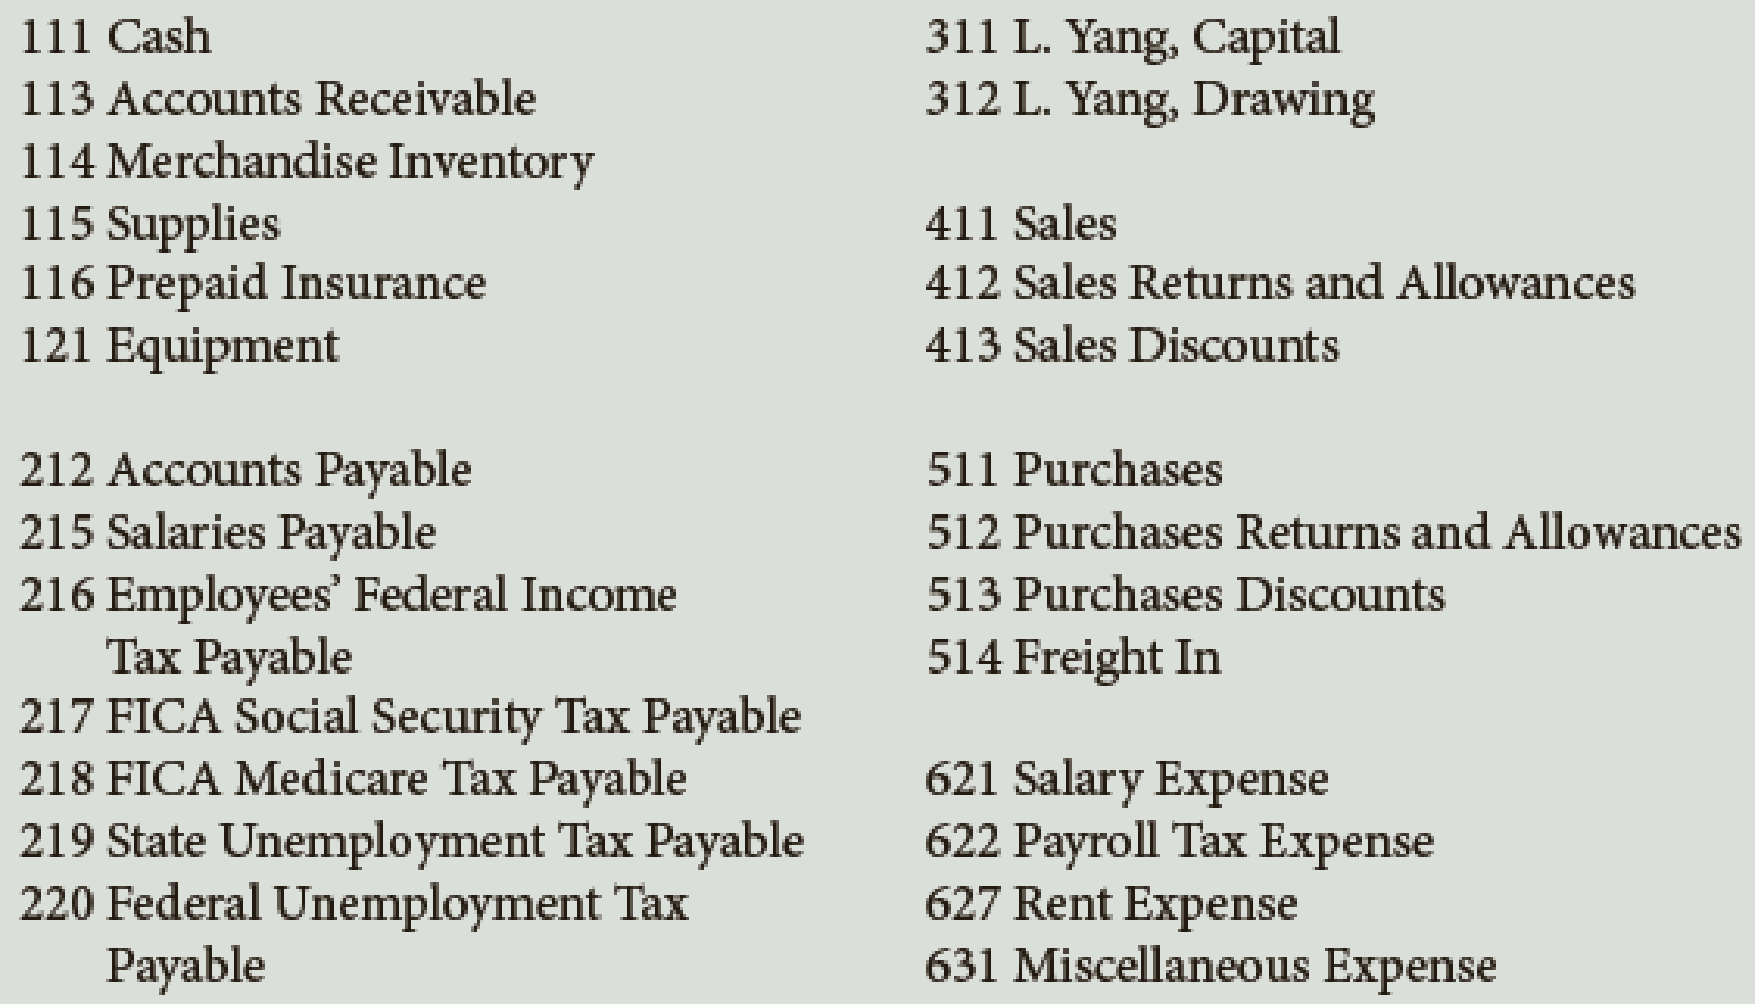 Chapter 10, Problem 1PB, The following transactions were completed by Yang Restaurant Equipment during January, the first